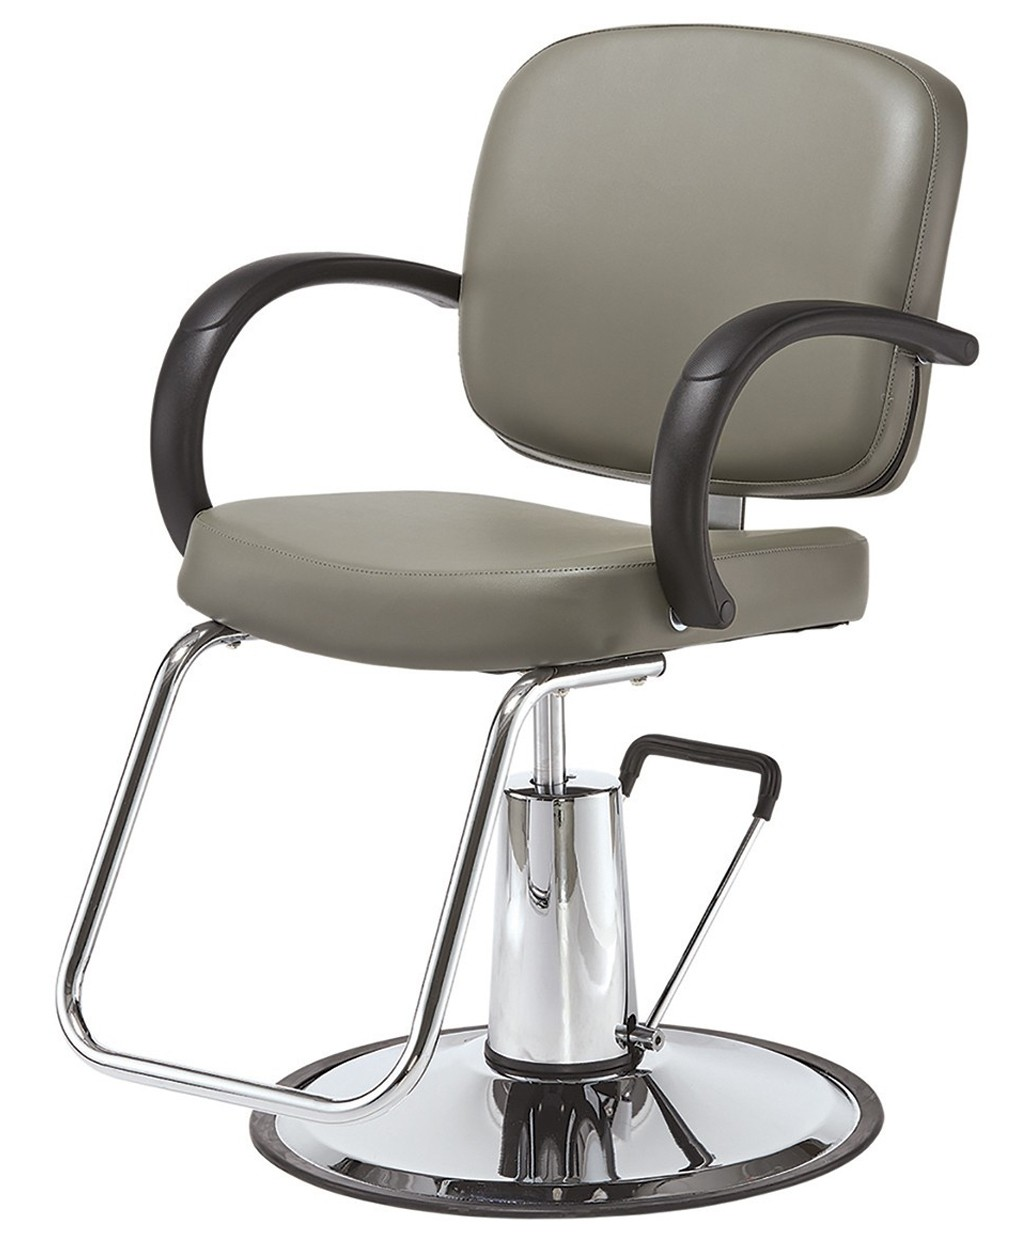 4 Operator Pibbs 3606 Messina Package Pibbs 3606 Messina Styling Chair